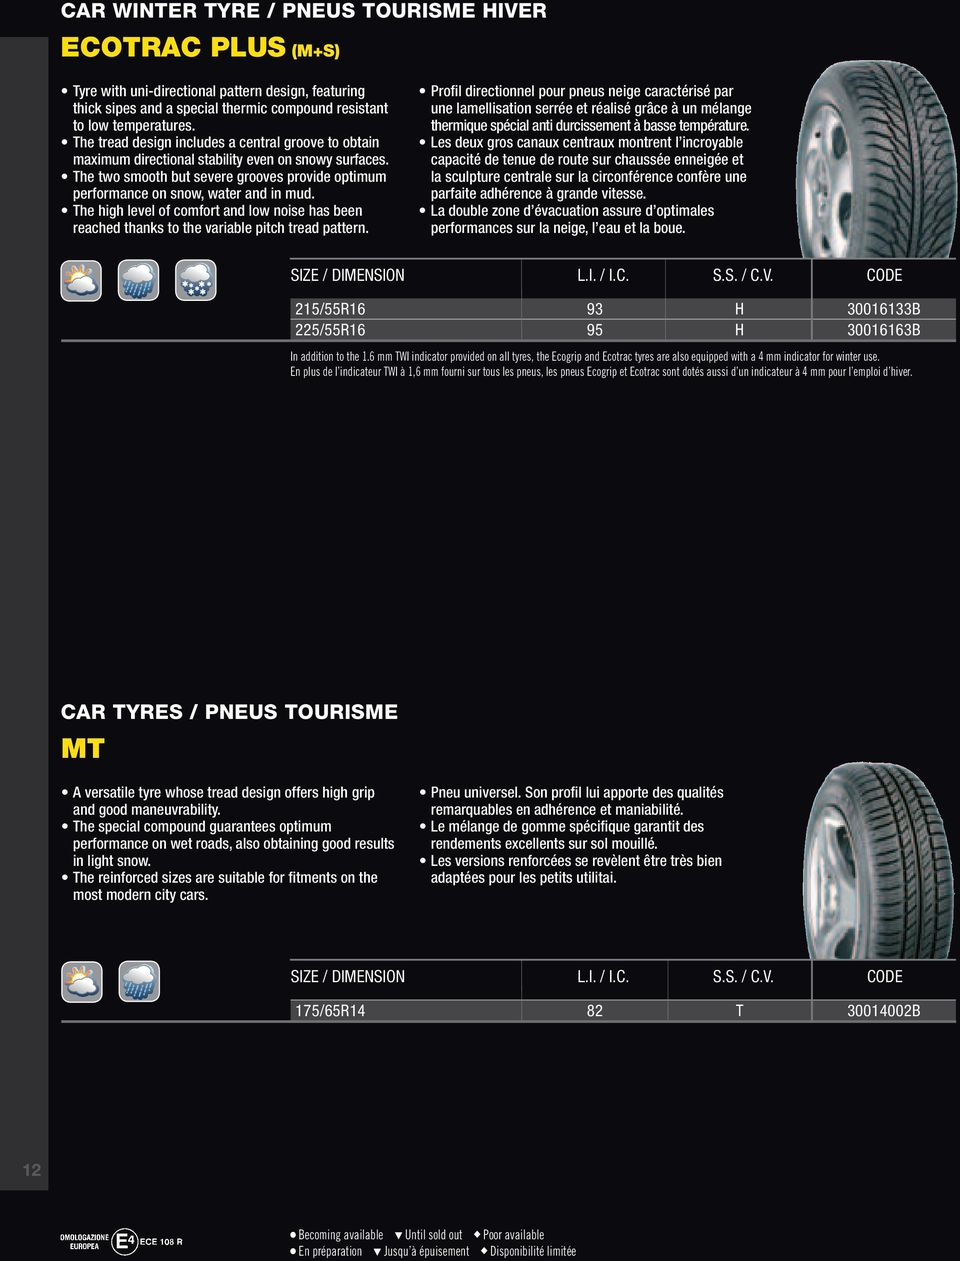 The high level of comfort and low noise has been reached thanks to the variable pitch tread pattern.